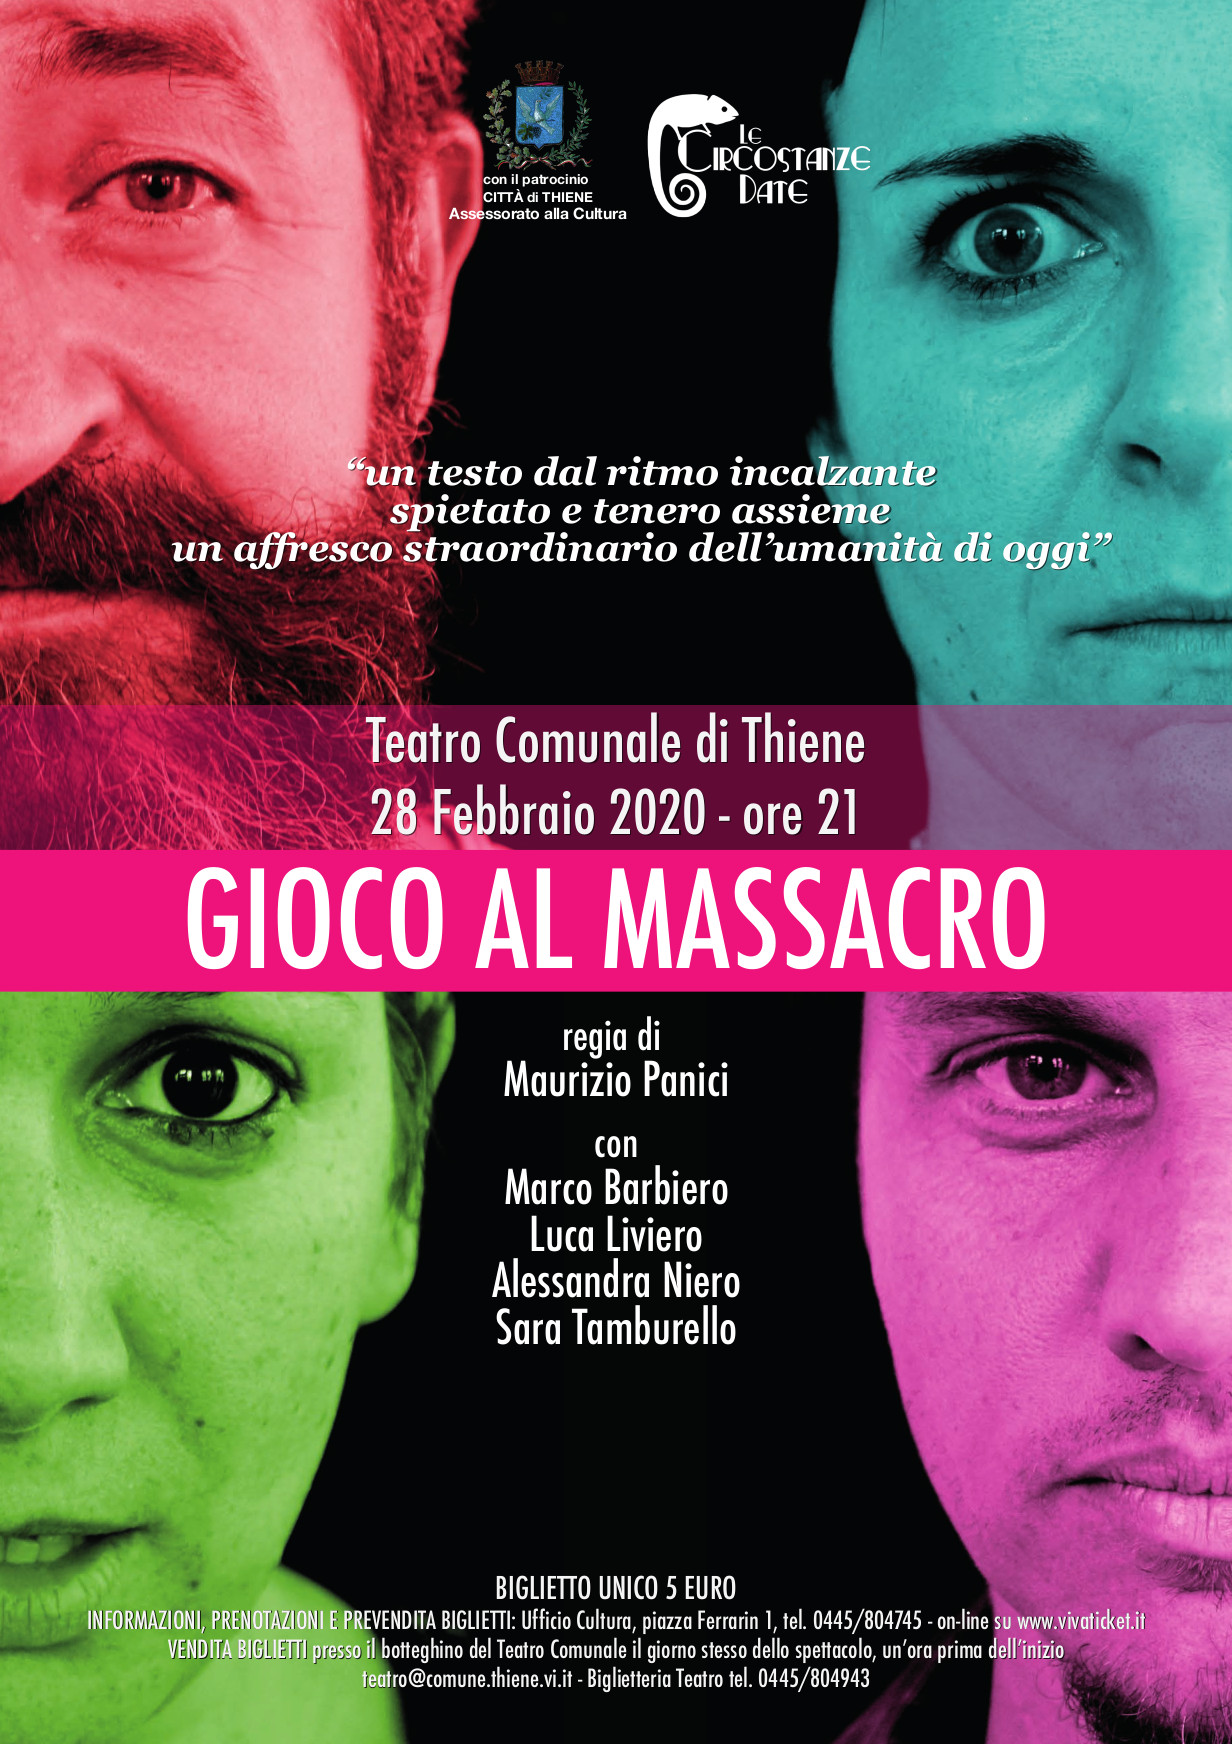 Gioco al massacro (EVENTO SOSPESO)